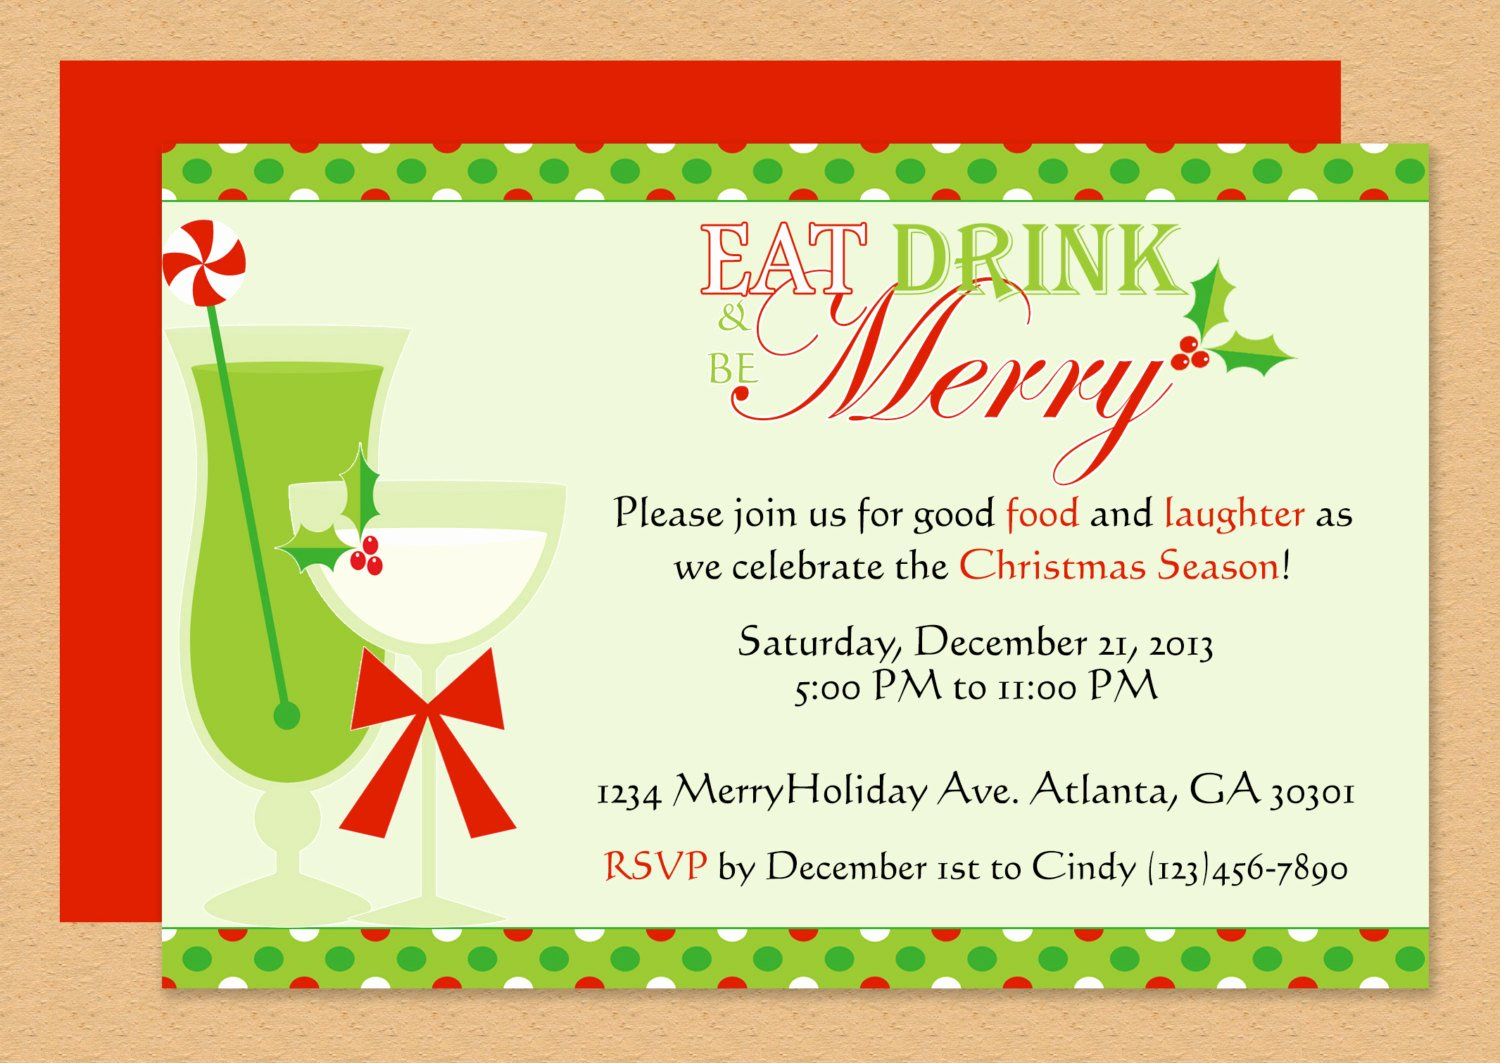 Word Template for Invitations Lovely Be Merry Invitation Editable Template Microsoft Word